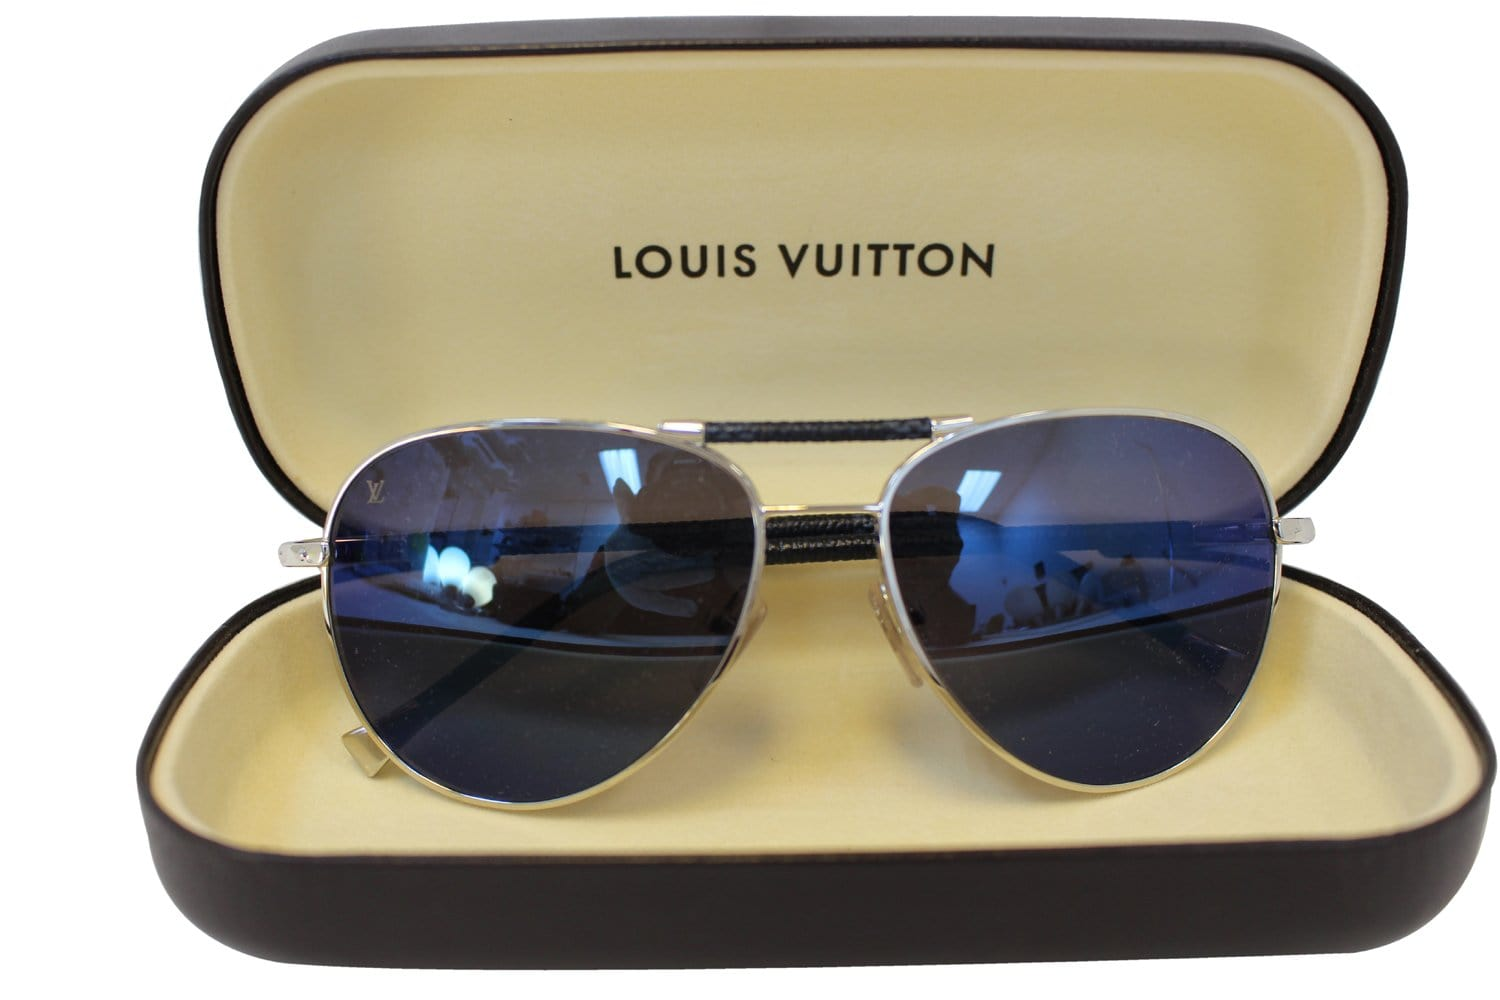 17b3a35b3cb LOUIS VUITTON Metal Frame Black Petite Viola Pilot Sunglasses ...